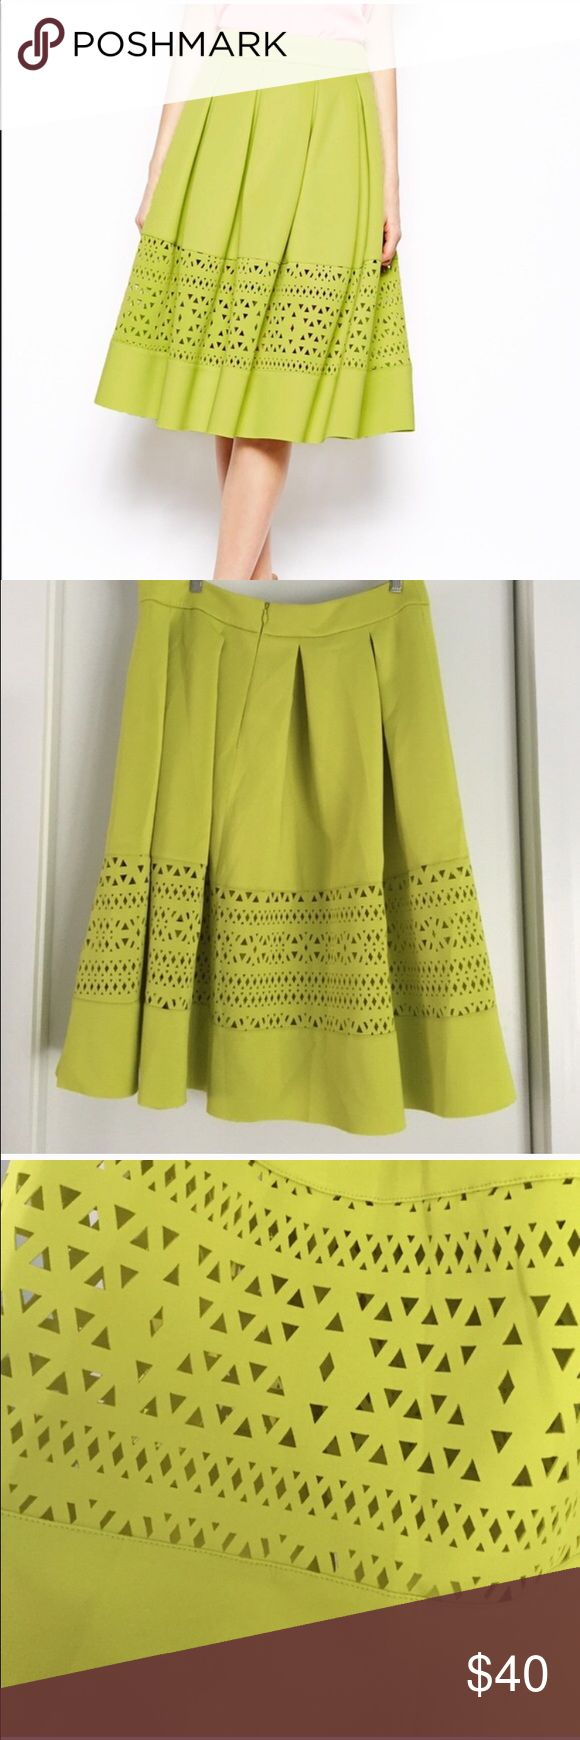 Asos skirt Gorgeous my favorite skirt even in excellent condition! Asos Skirts